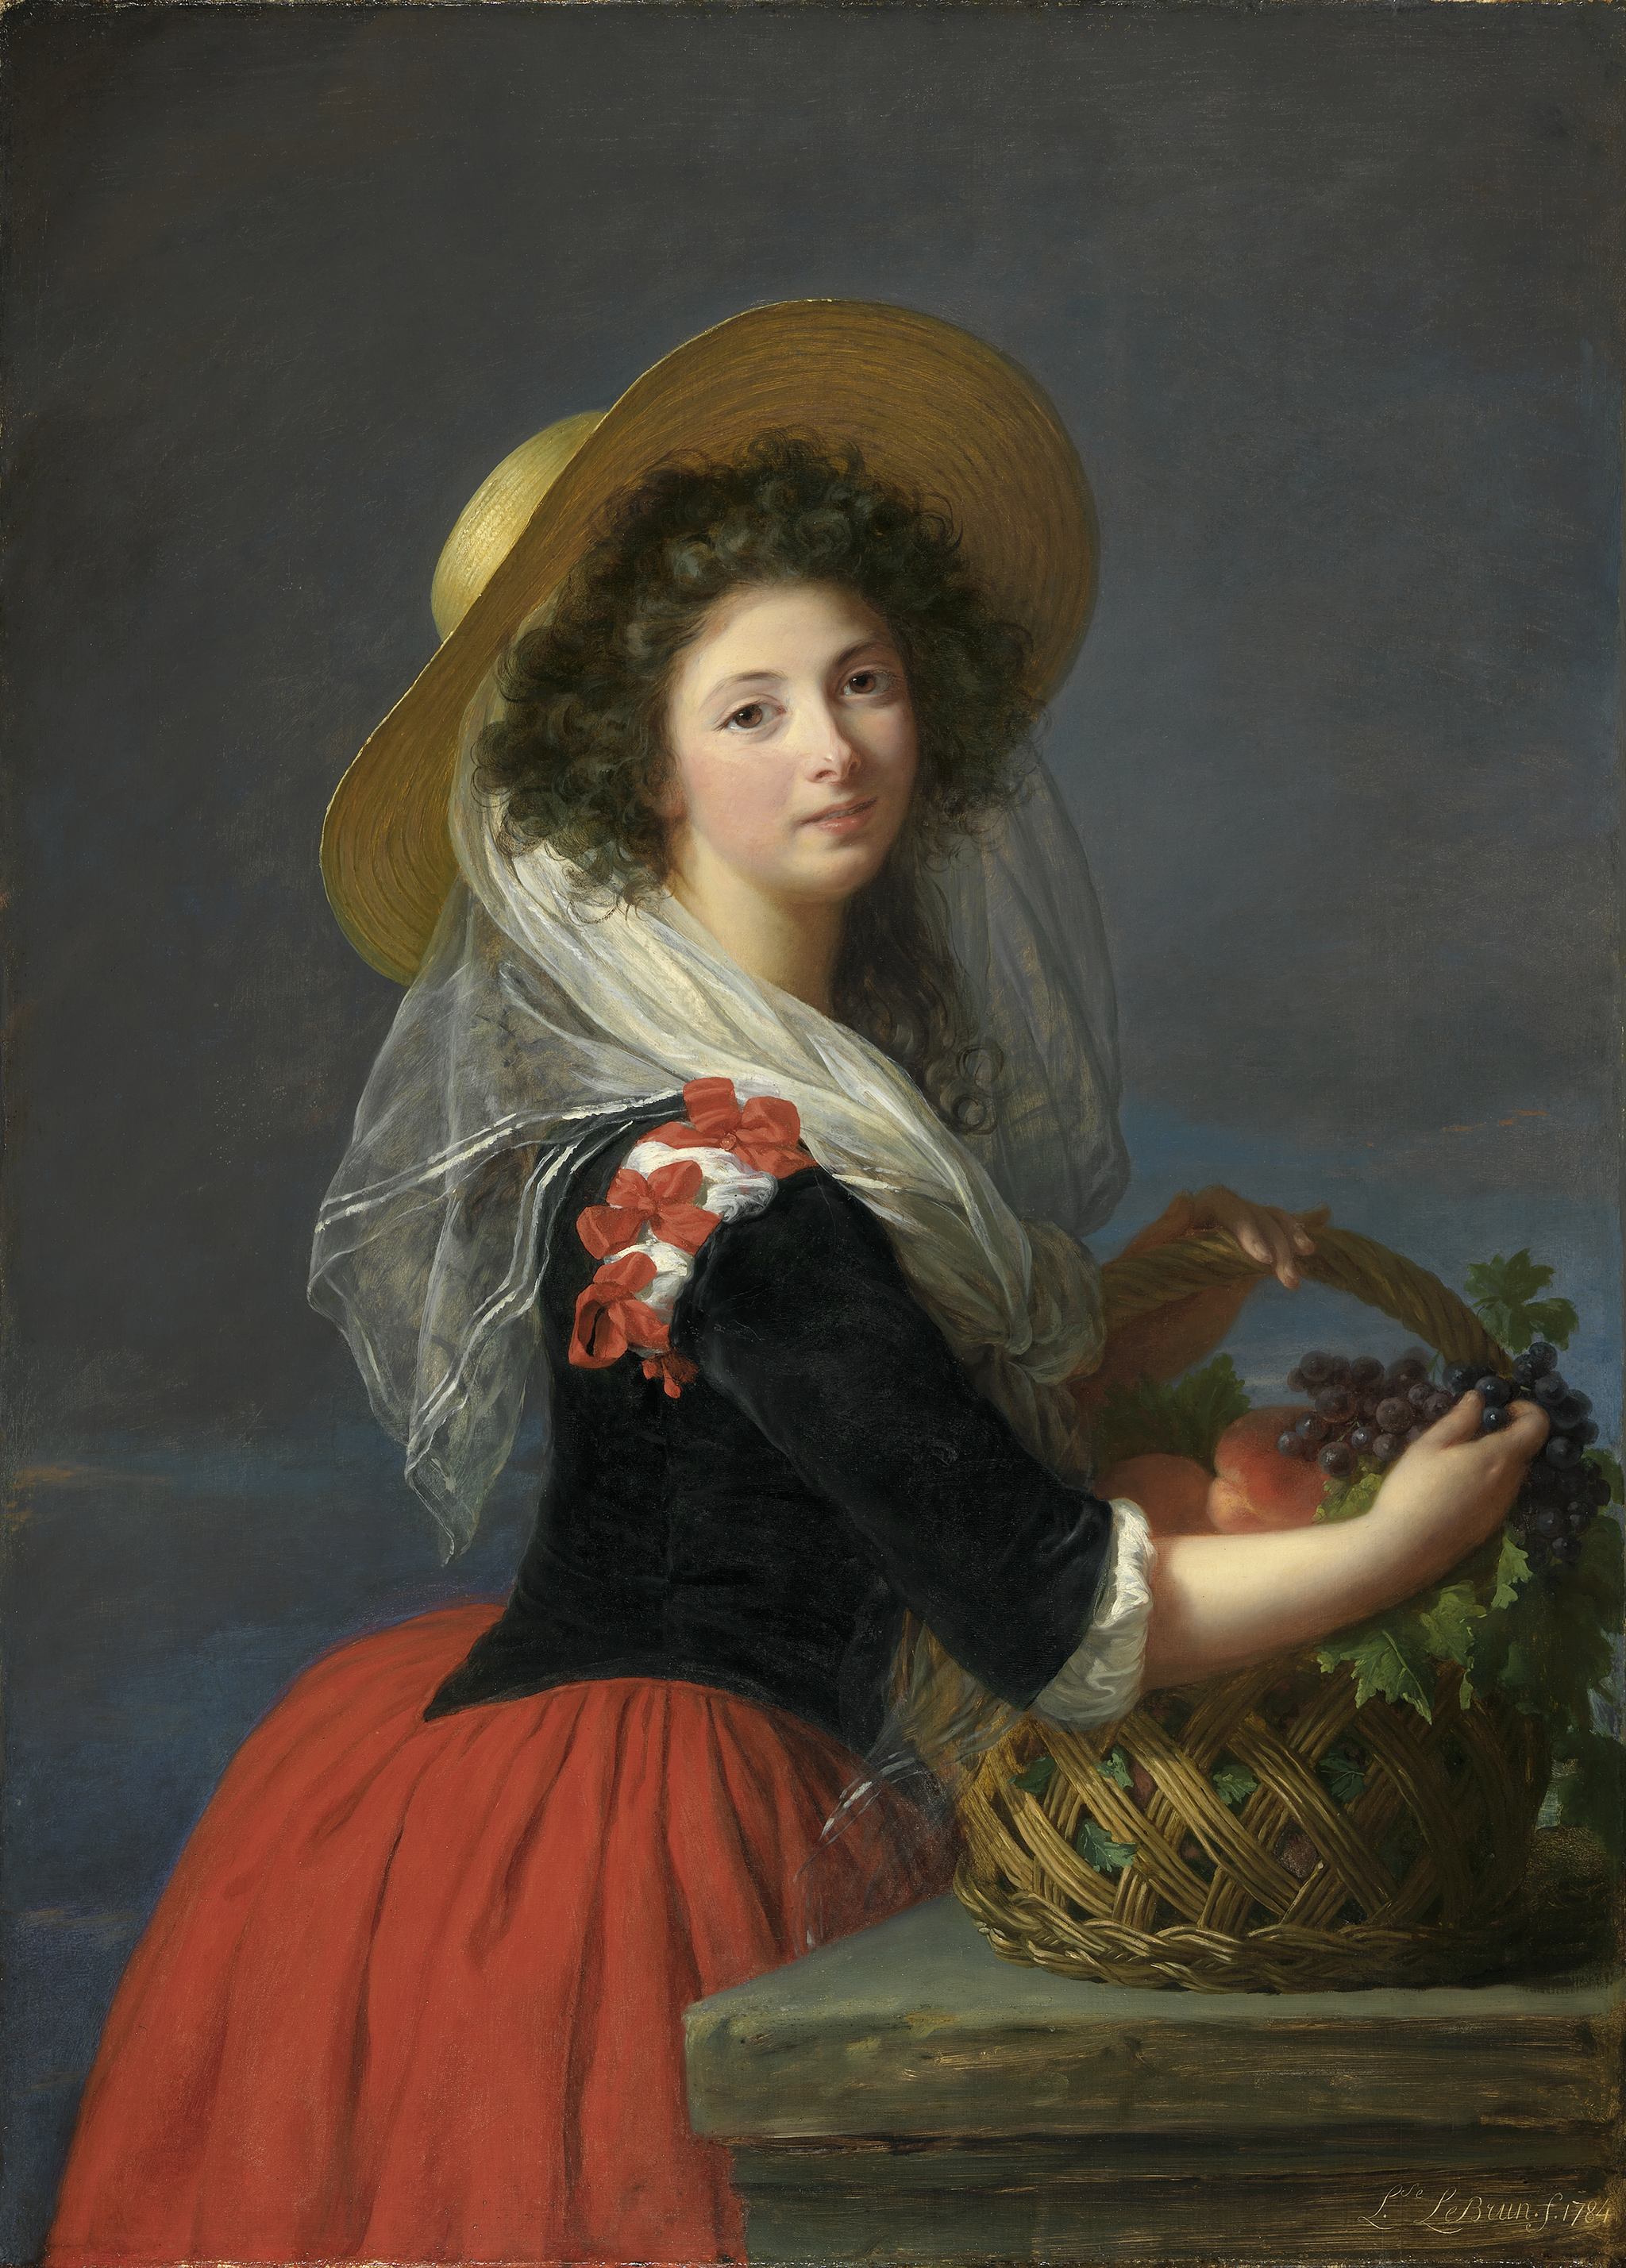 A young woman standing next to a ledge with a straw basket filled with fruit. She wears a scarlet skirt, black velvet bodice, and straw hat.